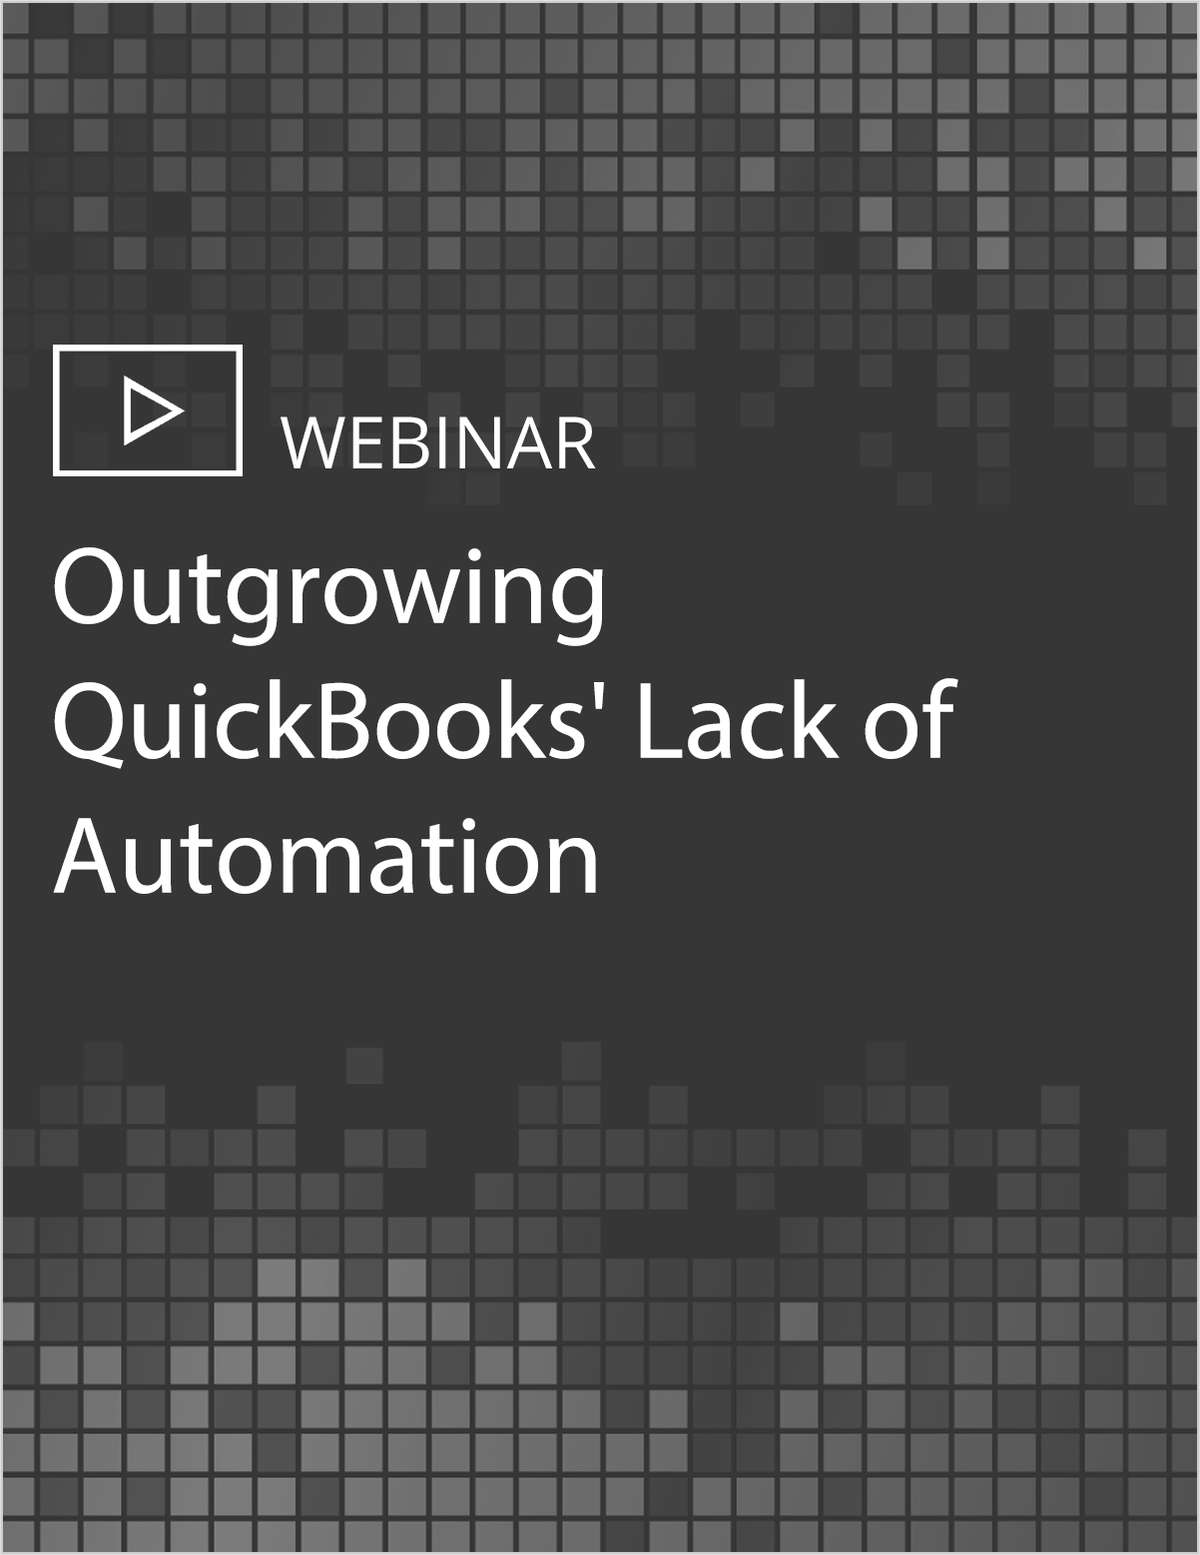 Outgrowing QuickBooks' Lack of Automation